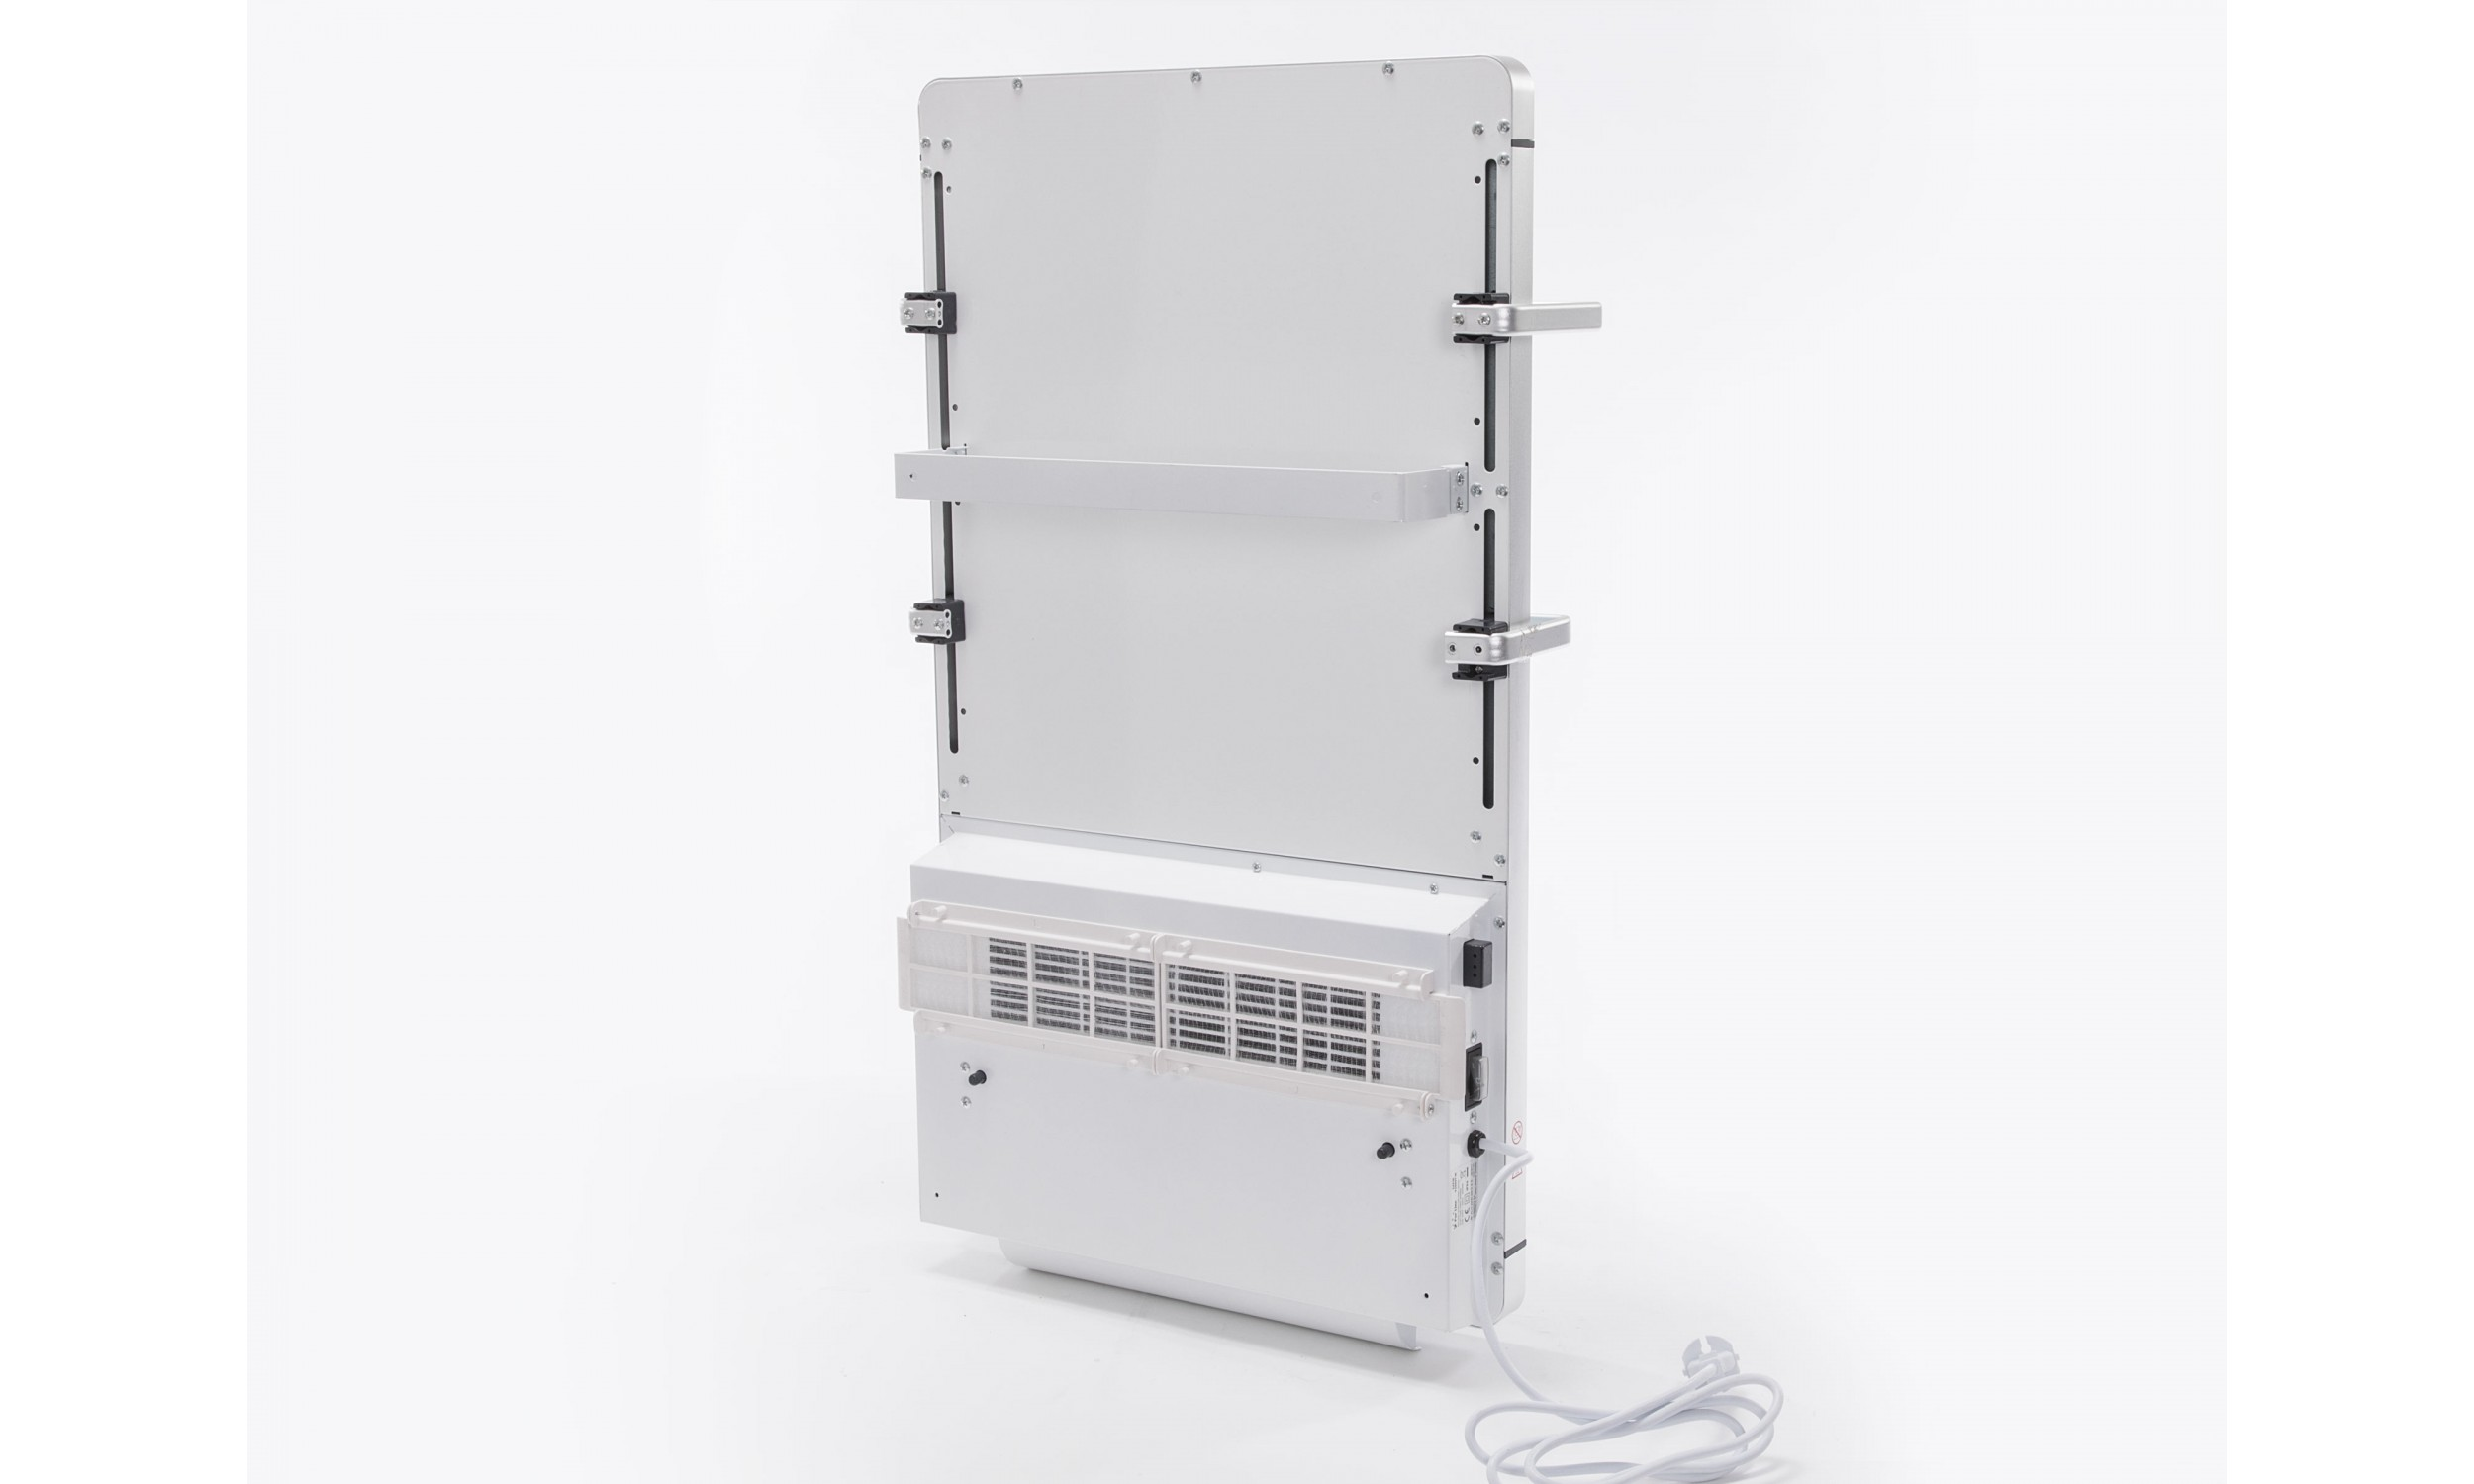 Digital electric heating towell with white tempered glass ZAFIR V2000T B